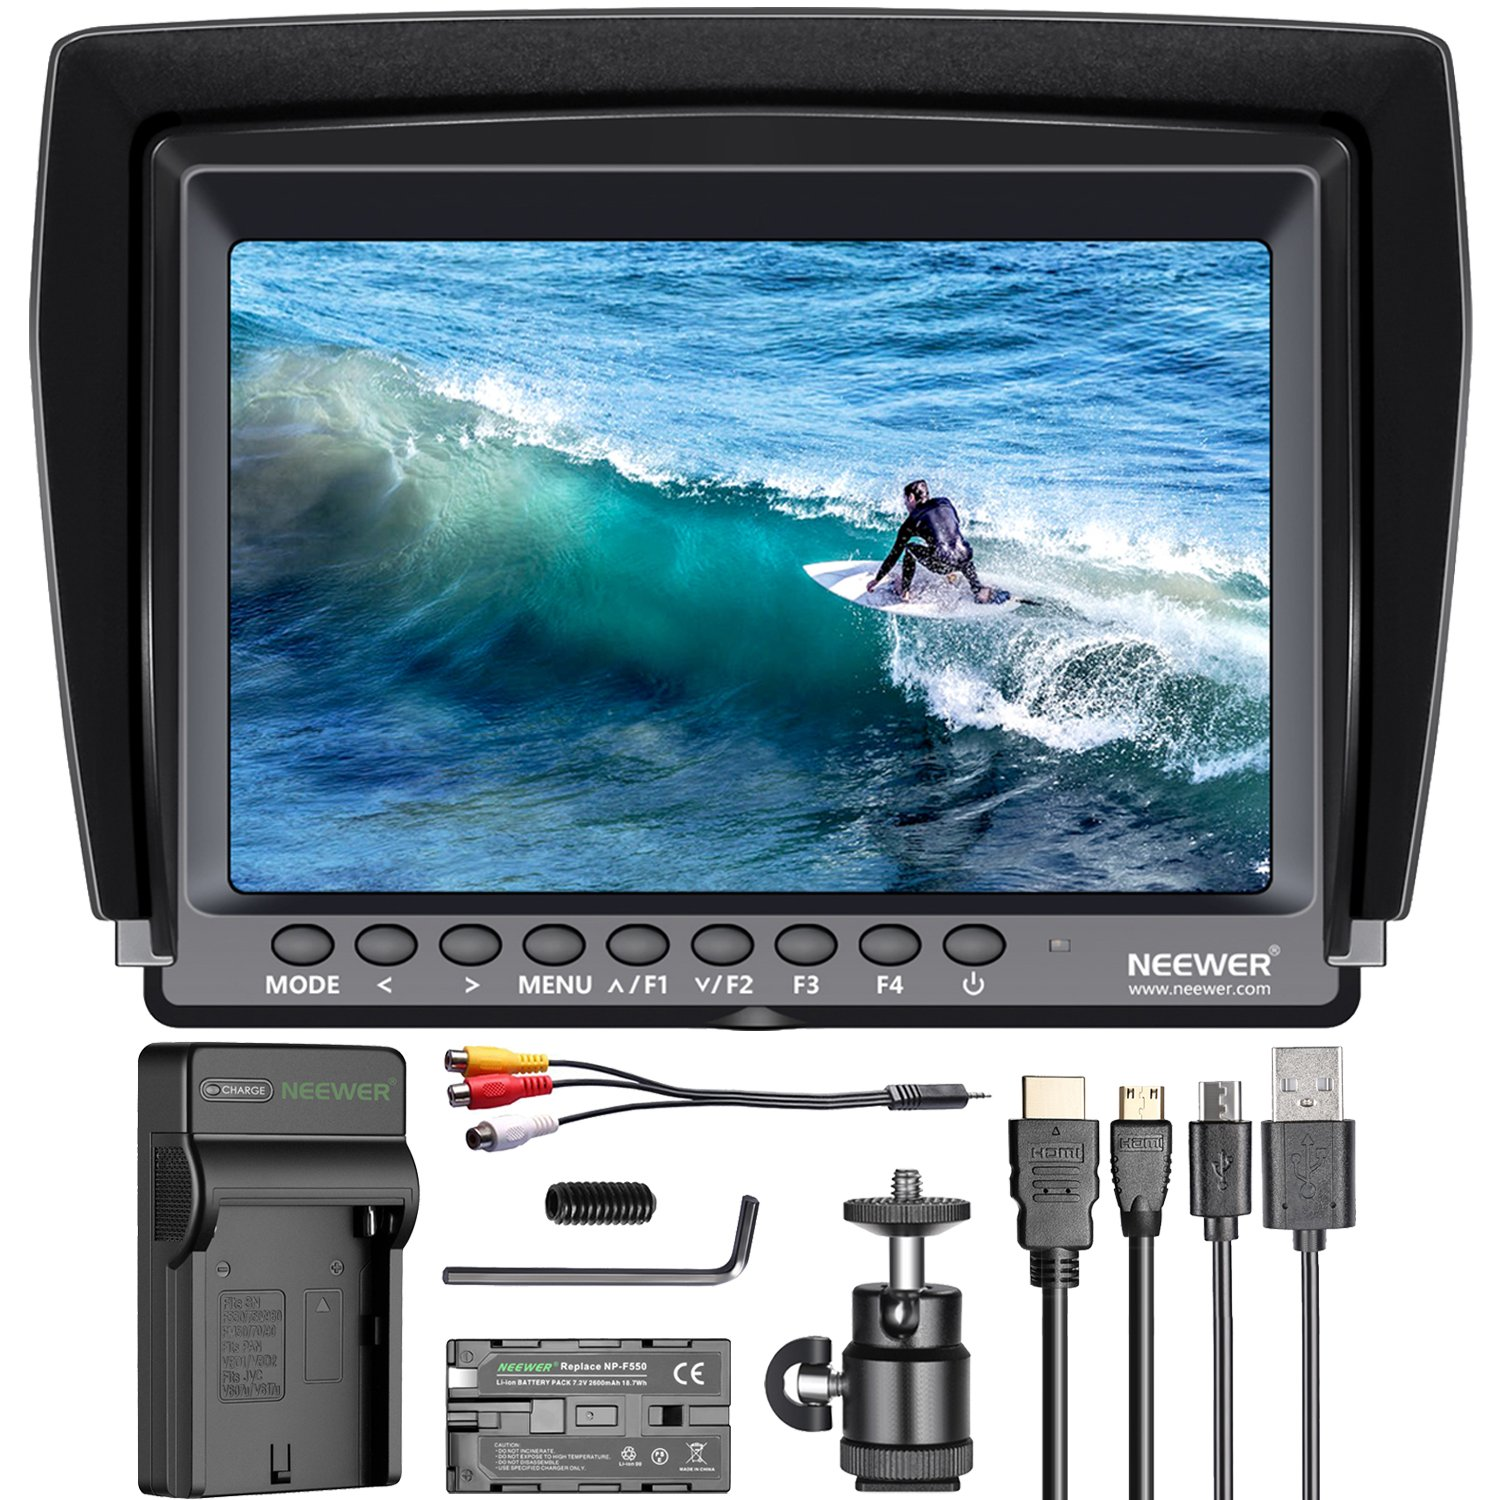 Neewer F100 7-inch 1280x800 IPS Screen Camera Field Monitor 4K HDMI Input output Video with 2600mAh Li-ion Battery,USB Charger For DSLR Mirrorless Camera GH5 SONY A7S II A6500 Canon 5D Mark IV by Neewer